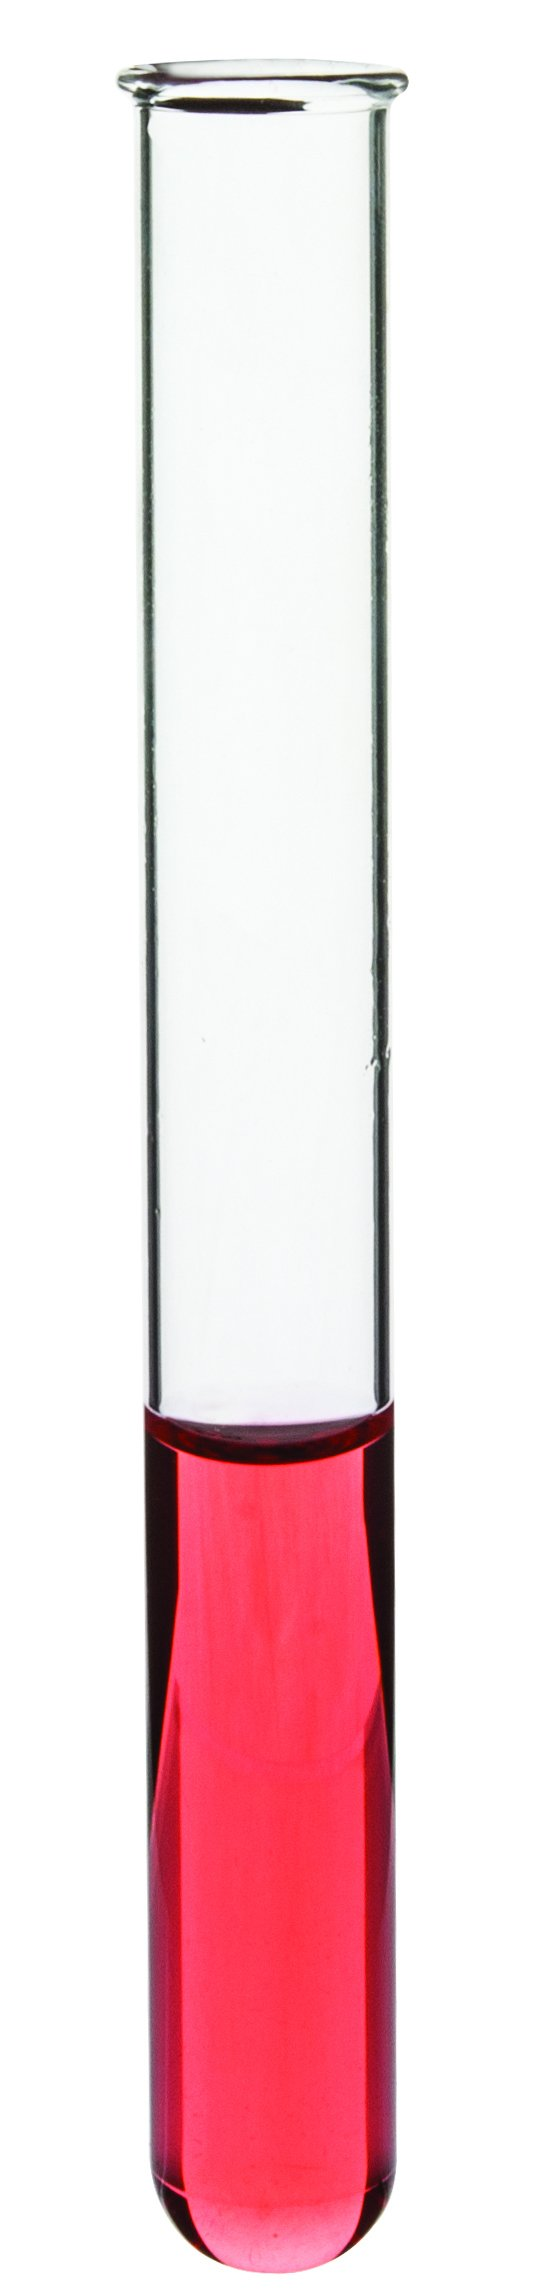 Eisco Labs Rimmed Borosilicate Glass Test Tube 15 x 130mm (5.25'' Height) Pack of 48